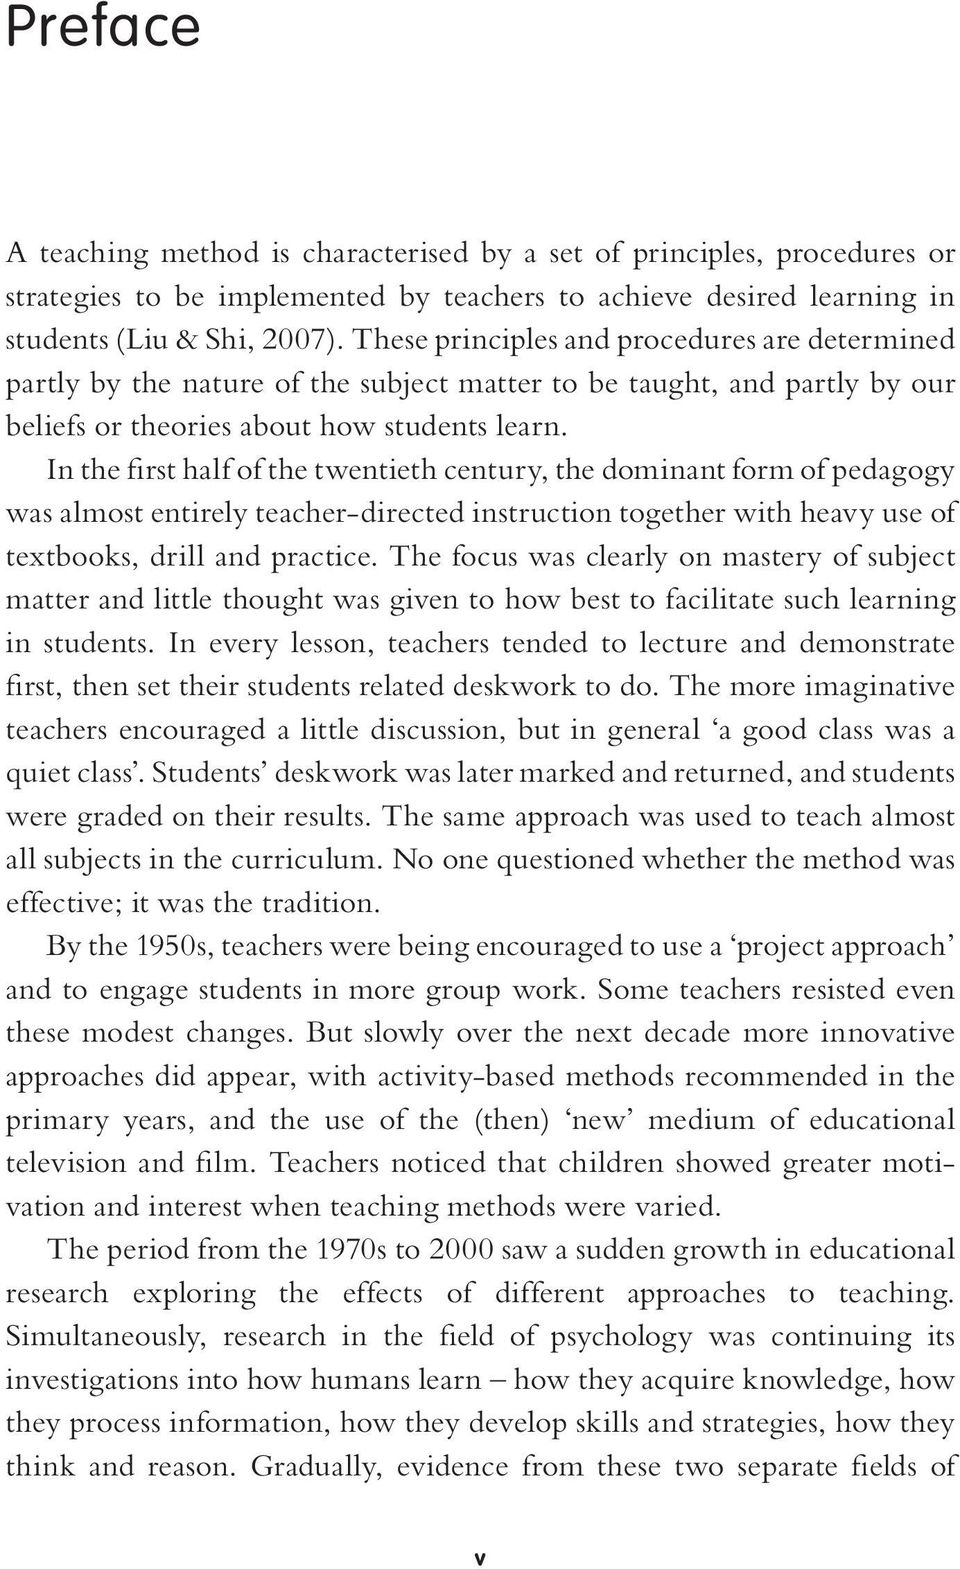 In the first half of the twentieth century, the dominant form of pedagogy was almost entirely teacher-directed instruction together with heavy use of textbooks, drill and practice.